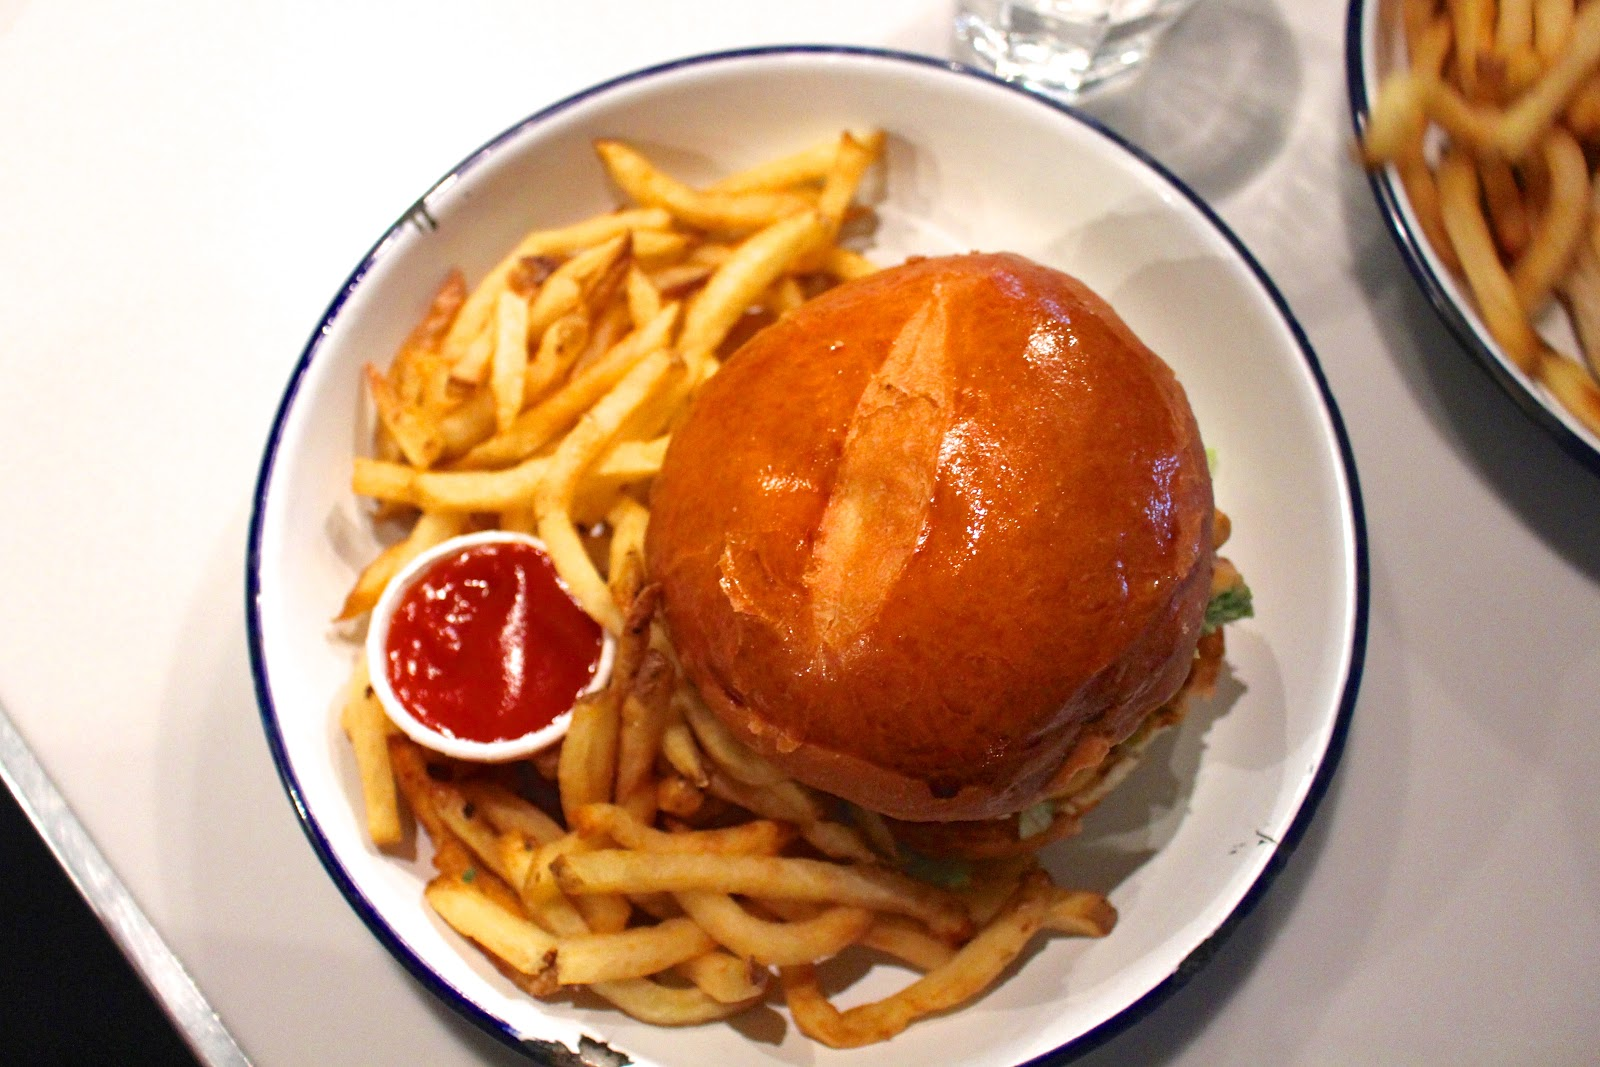 PNY Burgers | Paris New York